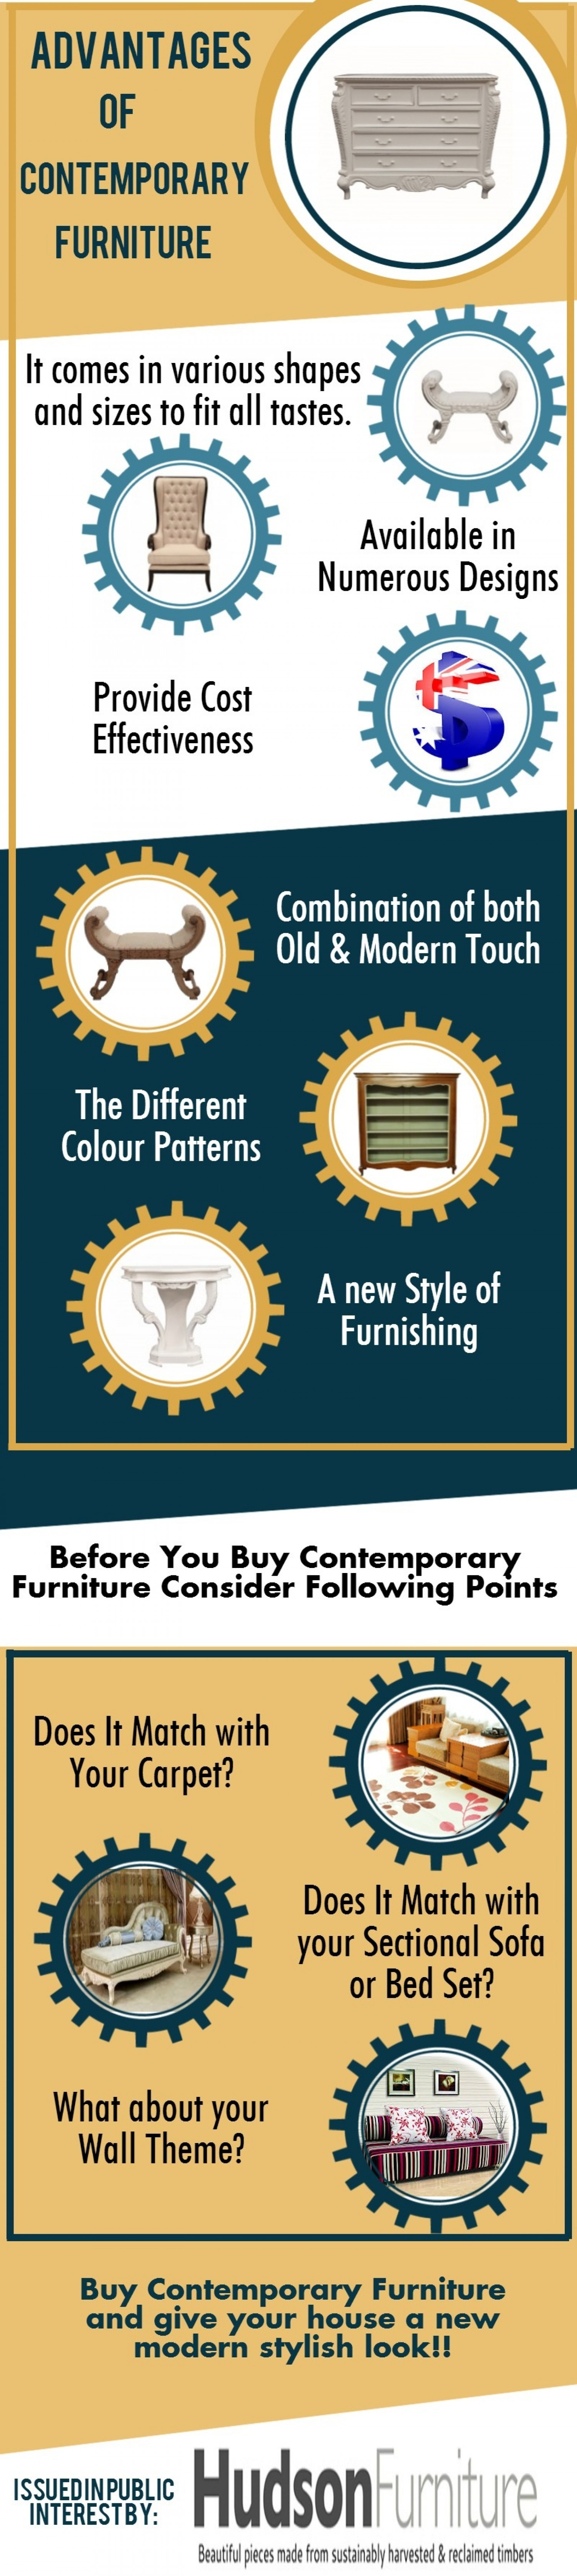 Advantages of Contemporary Furniture Infographic